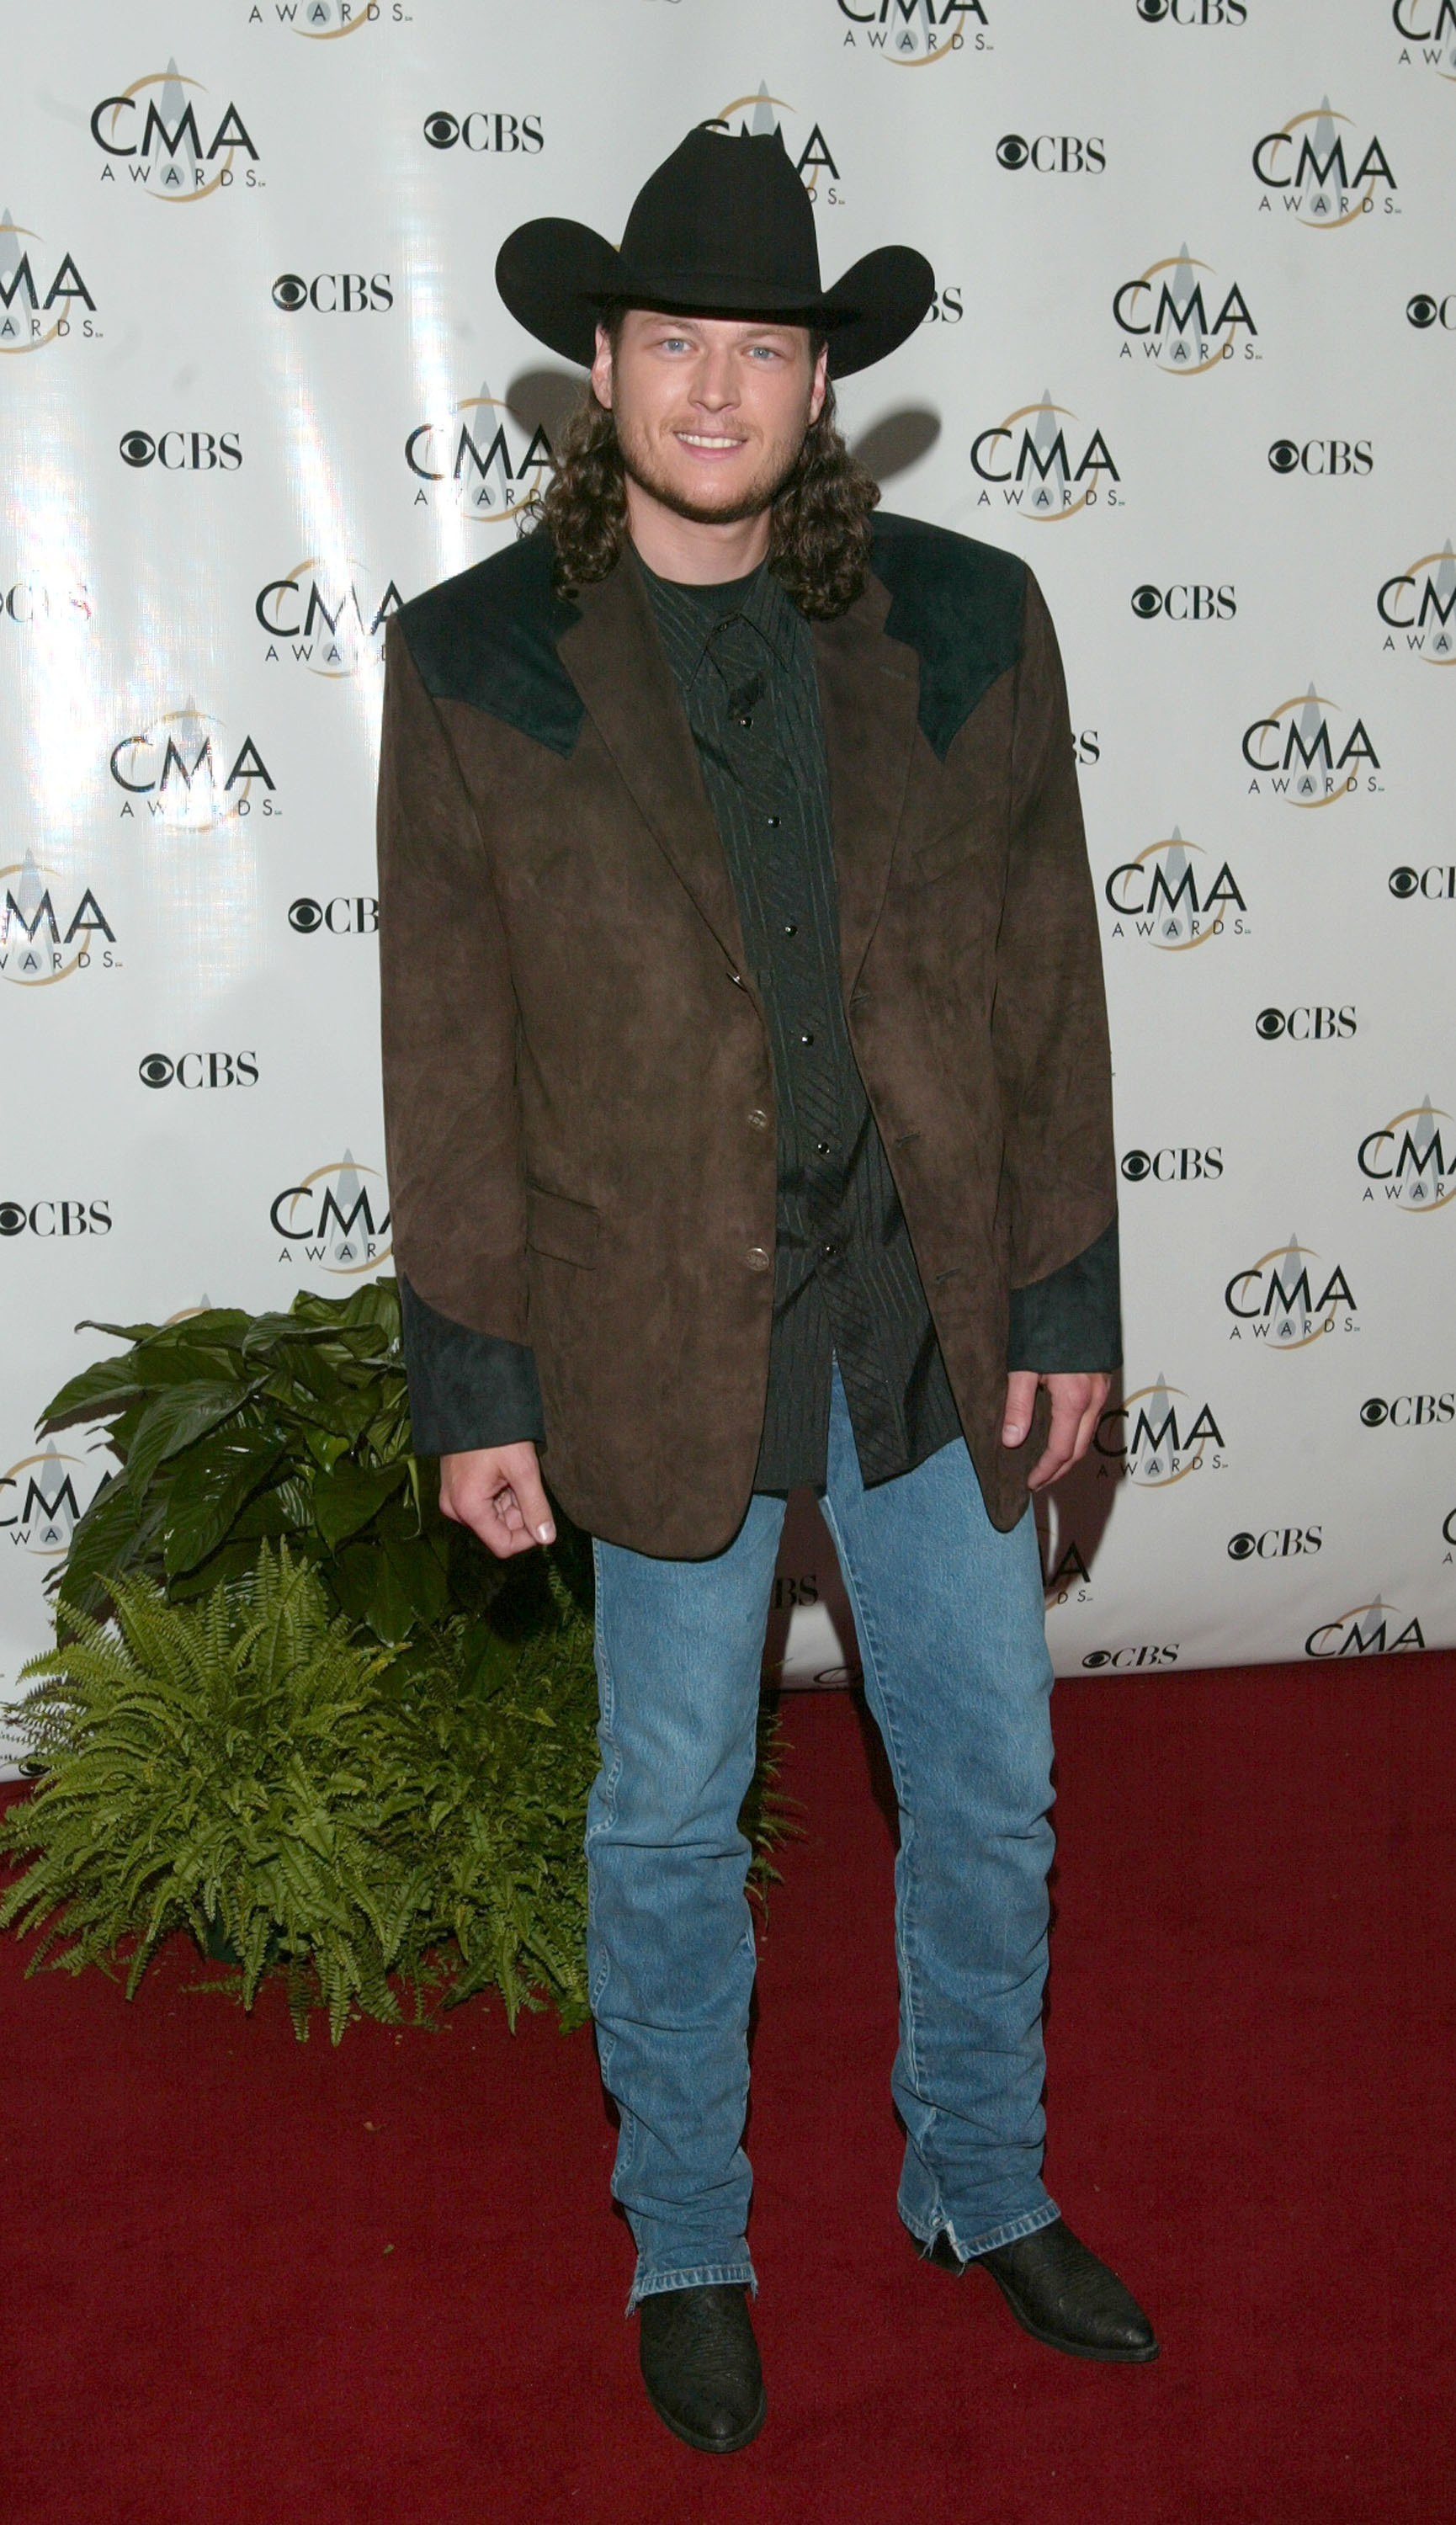 Blake Shelton attends the 37th Annual CMA Awards at the Grand Ole Opry in Nashville on Nov. 5, 2003.